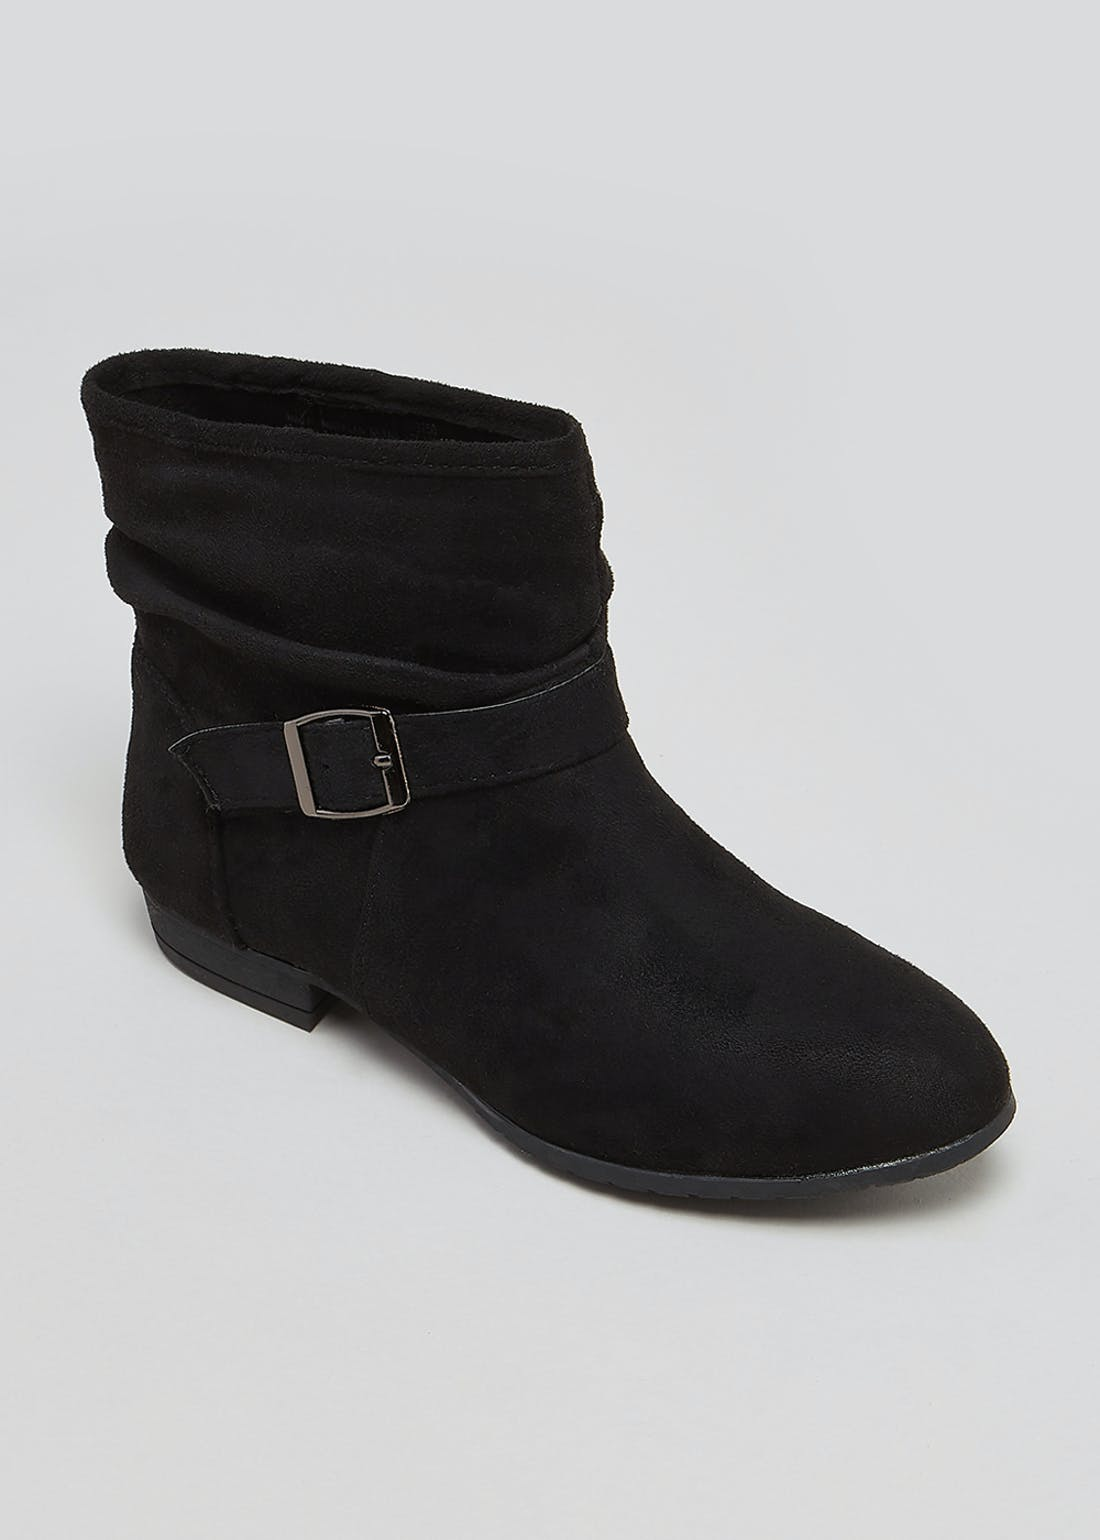 Black Slouch Ankle Boots